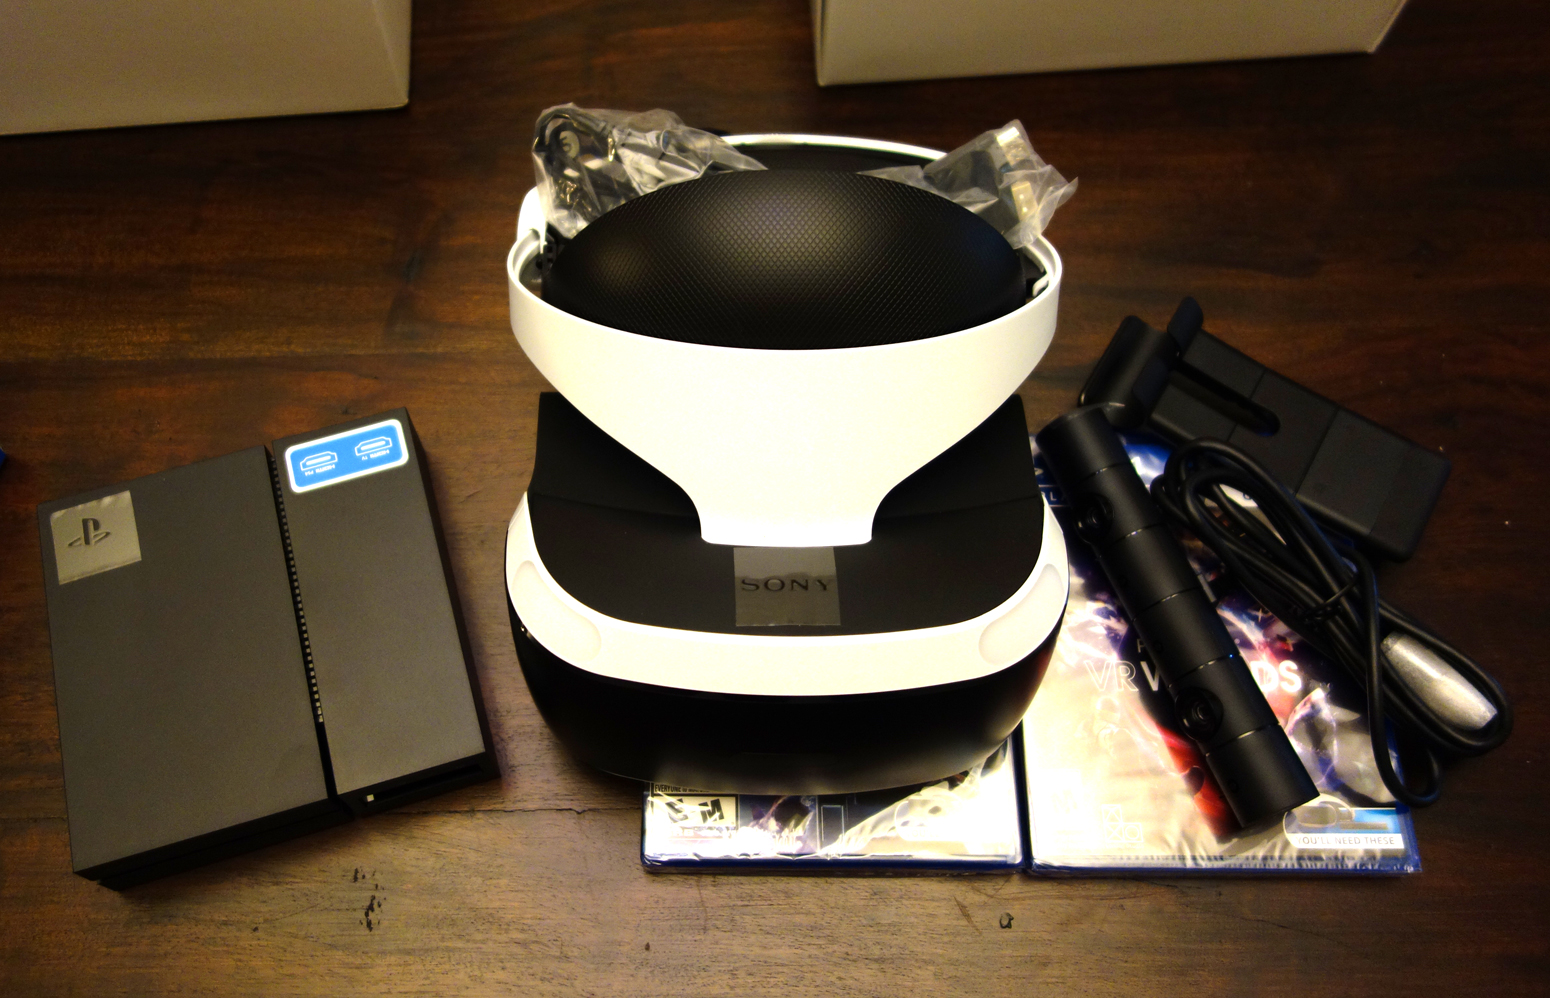 PlayStation VR Launch Bundle Unboxing - Headset, Camera, Processor box, Discs